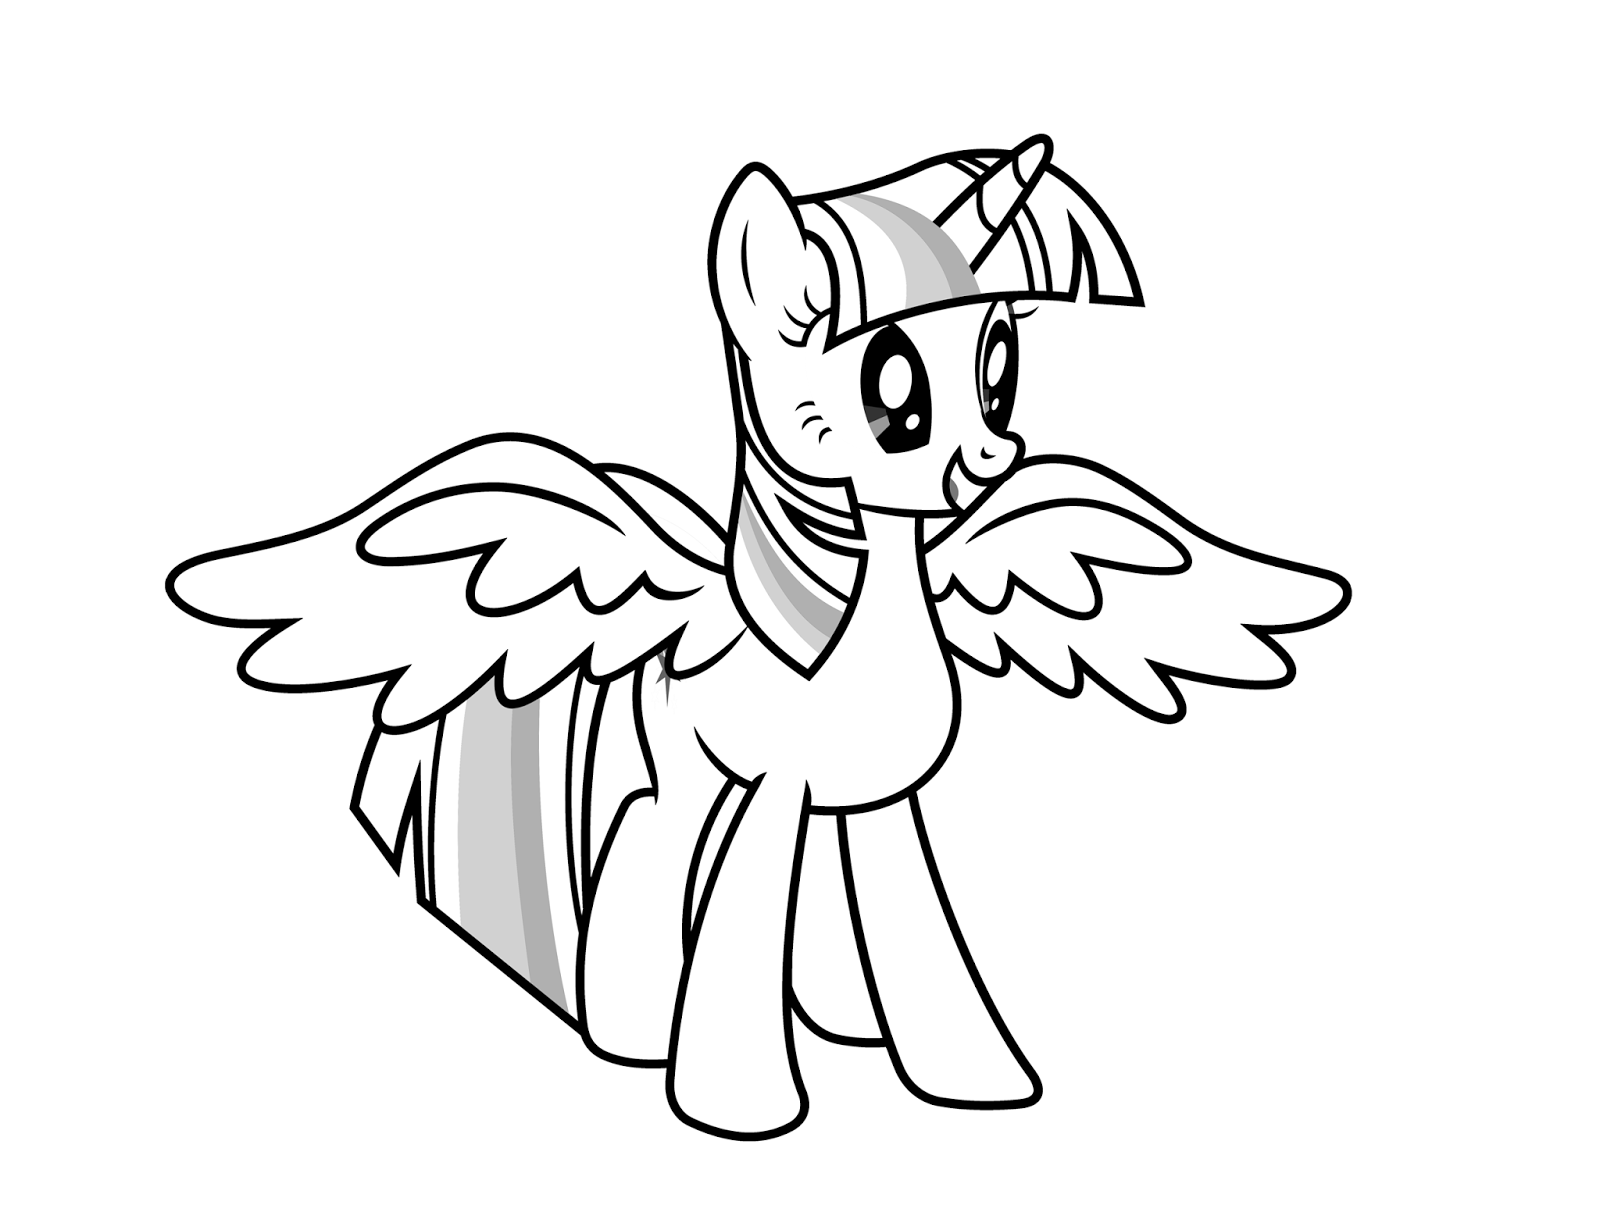 my little pony coloring pages twilight sparkle my little pony coloring pages twilight sparkle castle pony little my pages coloring sparkle twilight